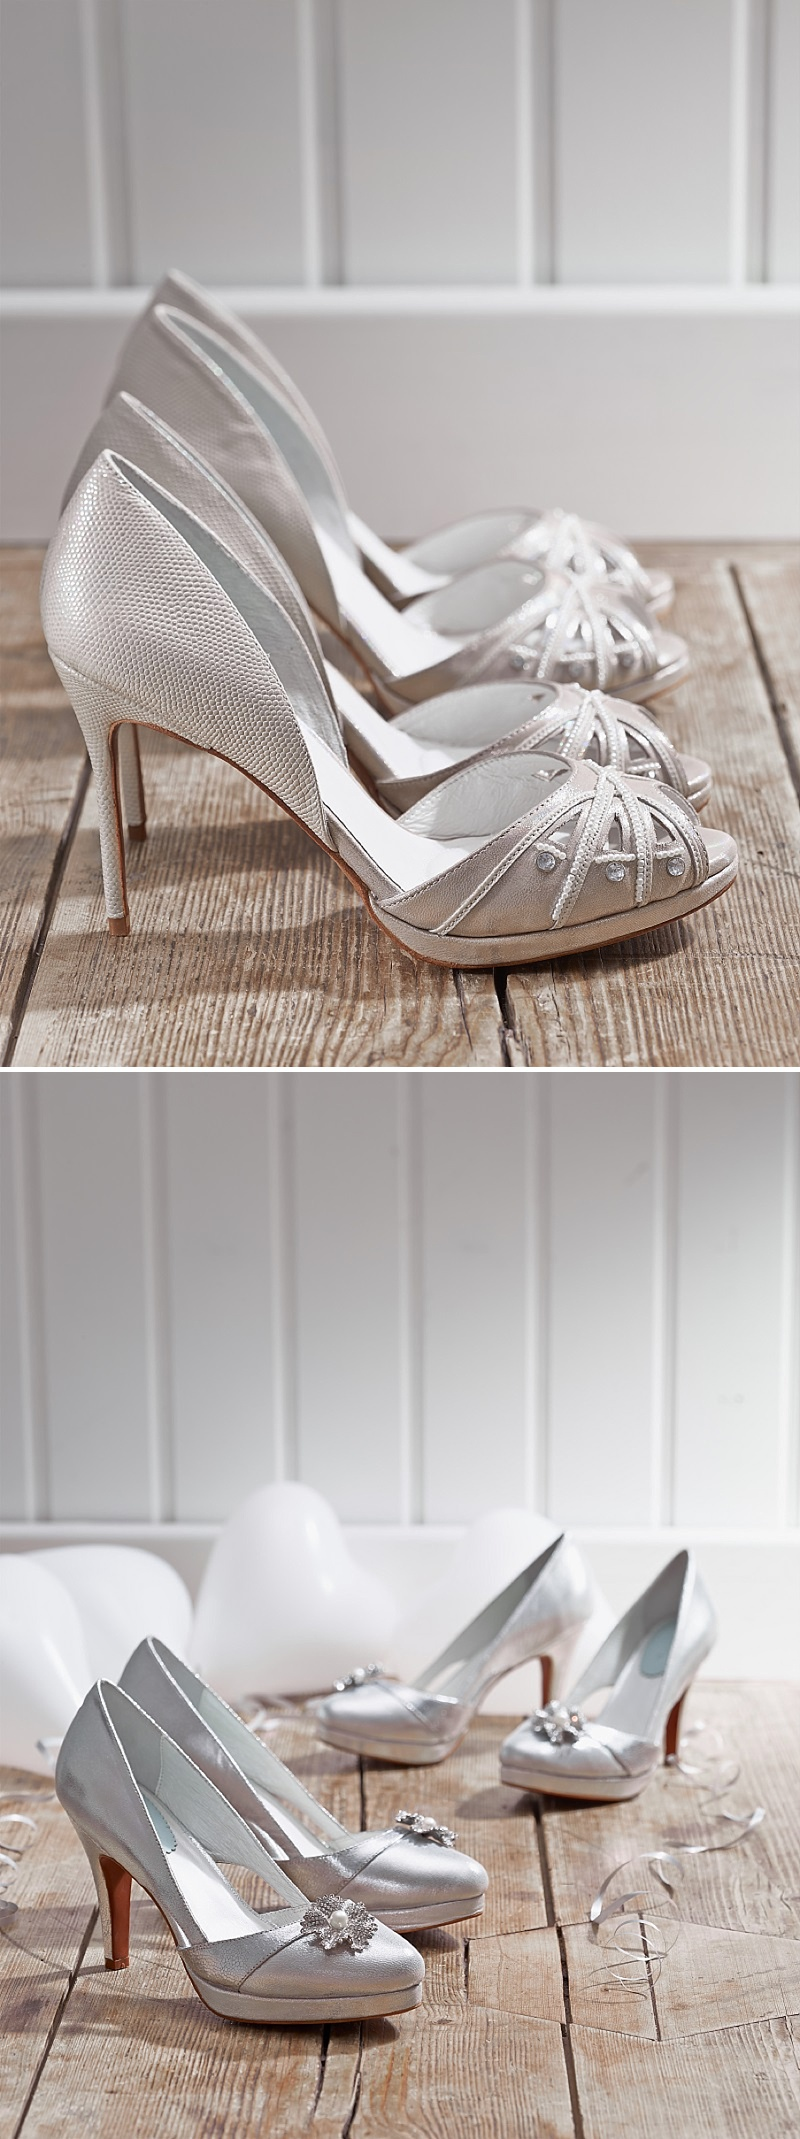 The Debut Collection From Bridal Shoe Designers Merle And Morris Featuring Stylish And Comfortable Wedding Shoes With A Concealed Foam Layer 0001 Recommended   Merle & Morris.